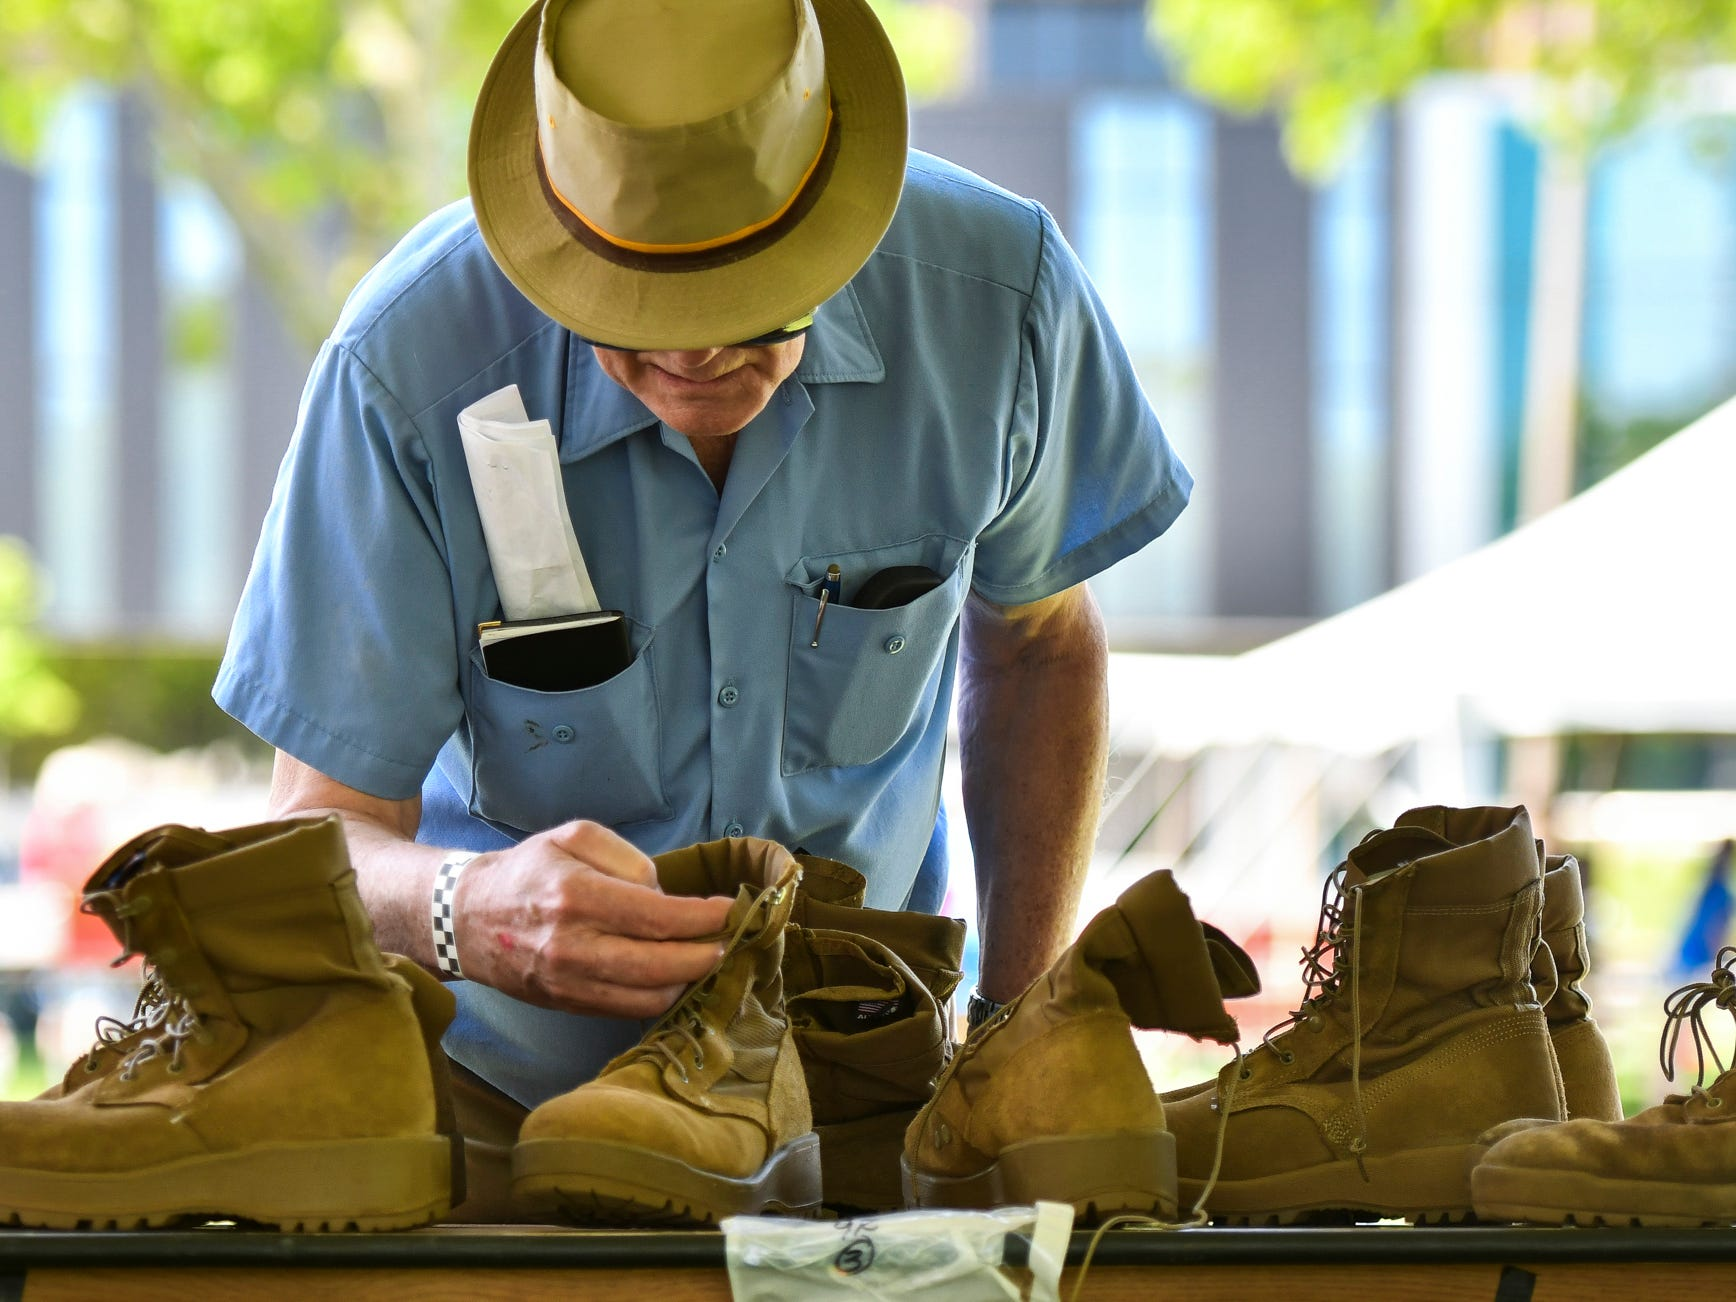 Ed Eitelbuss of Lansing searches for a pair of boots in his size, Wednesday, May 23, 2018, at Adado Riverfront Park in downtown Lansing during the 15th Annual Capital Area Stand Down for Homeless Veterans.  The event brings together services at a single location to provide resources for homeless veterans, and those at risk of becoming homeless.  Just over 50 area agencies were in attendance to provide health screenings,  shots, benefits enrollment, employment help, housing help, and clothing.  The event is put on by Volunteers of America Michigan in partnership with the US Department of Veteran Affairs.